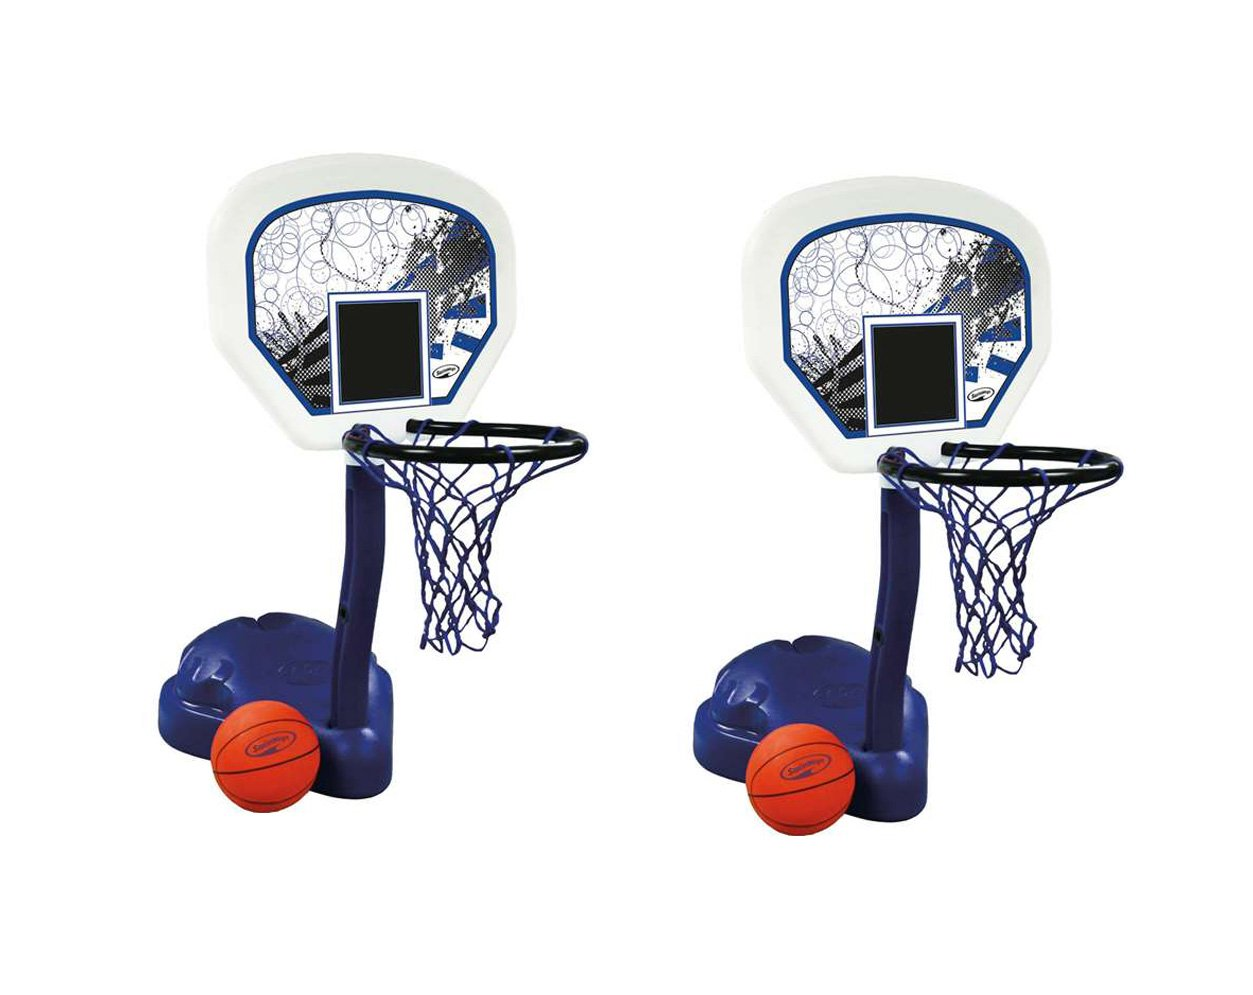 Pack of 2 - SwimWays Poolside Basketball Hoops Pool Water Game Set with Ball